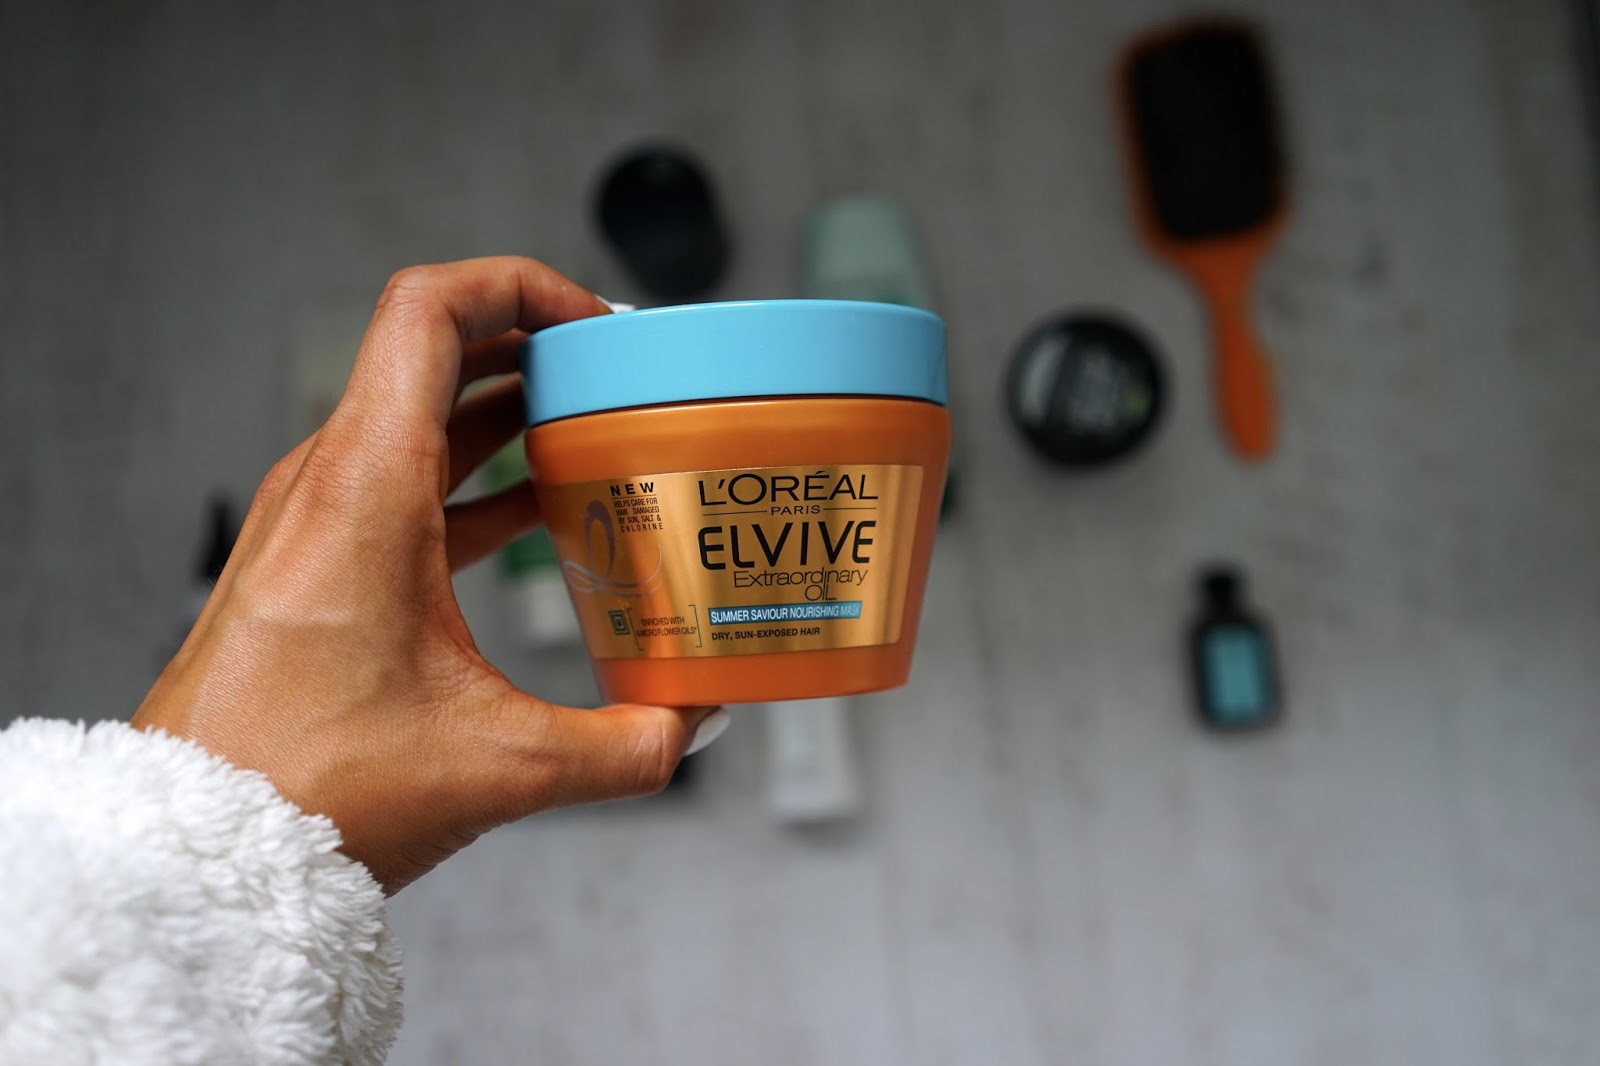 L'oreal elvive extraordinary hair mask